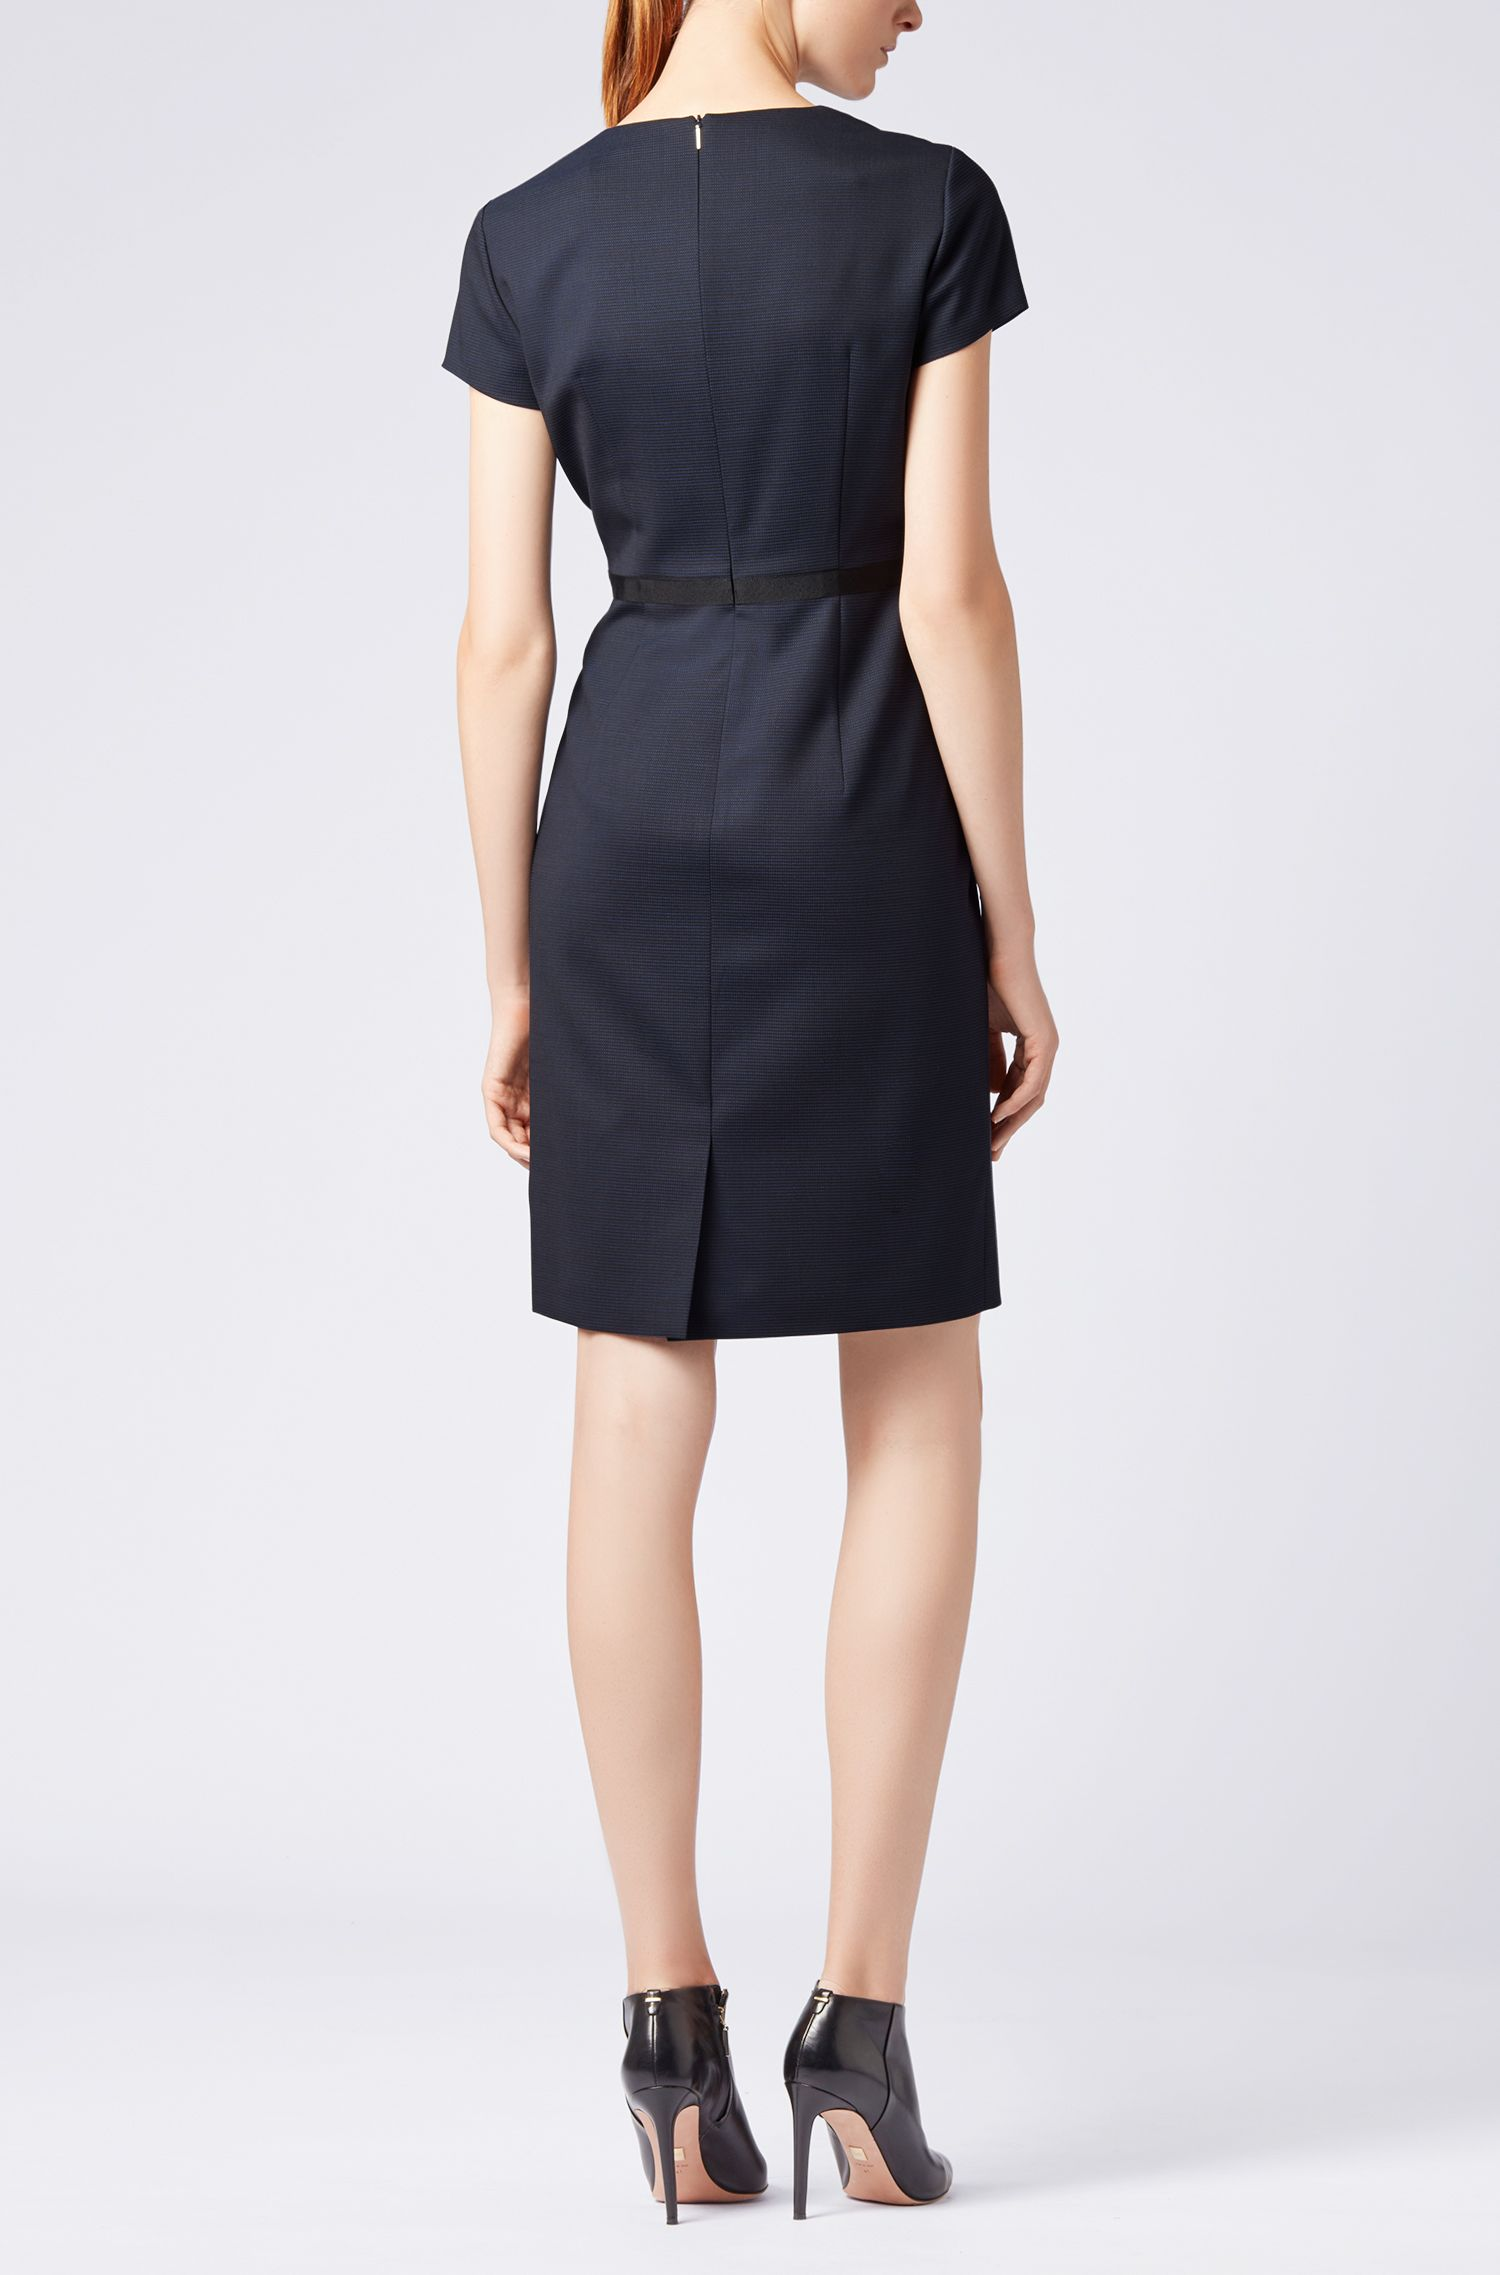 Hugo Boss - Shift dress in Italian stretch wool with notch neckline - 3